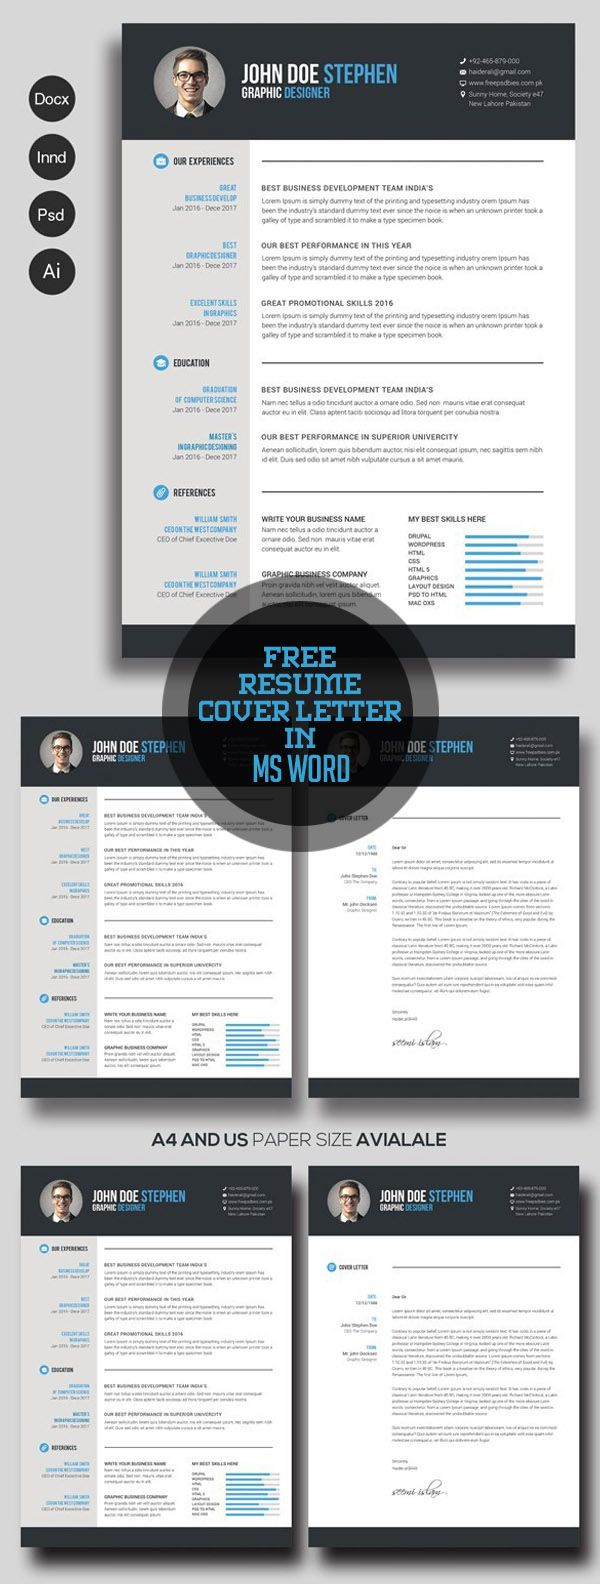 500 Best Print Ready Designs Images On Pinterest Cover Letter